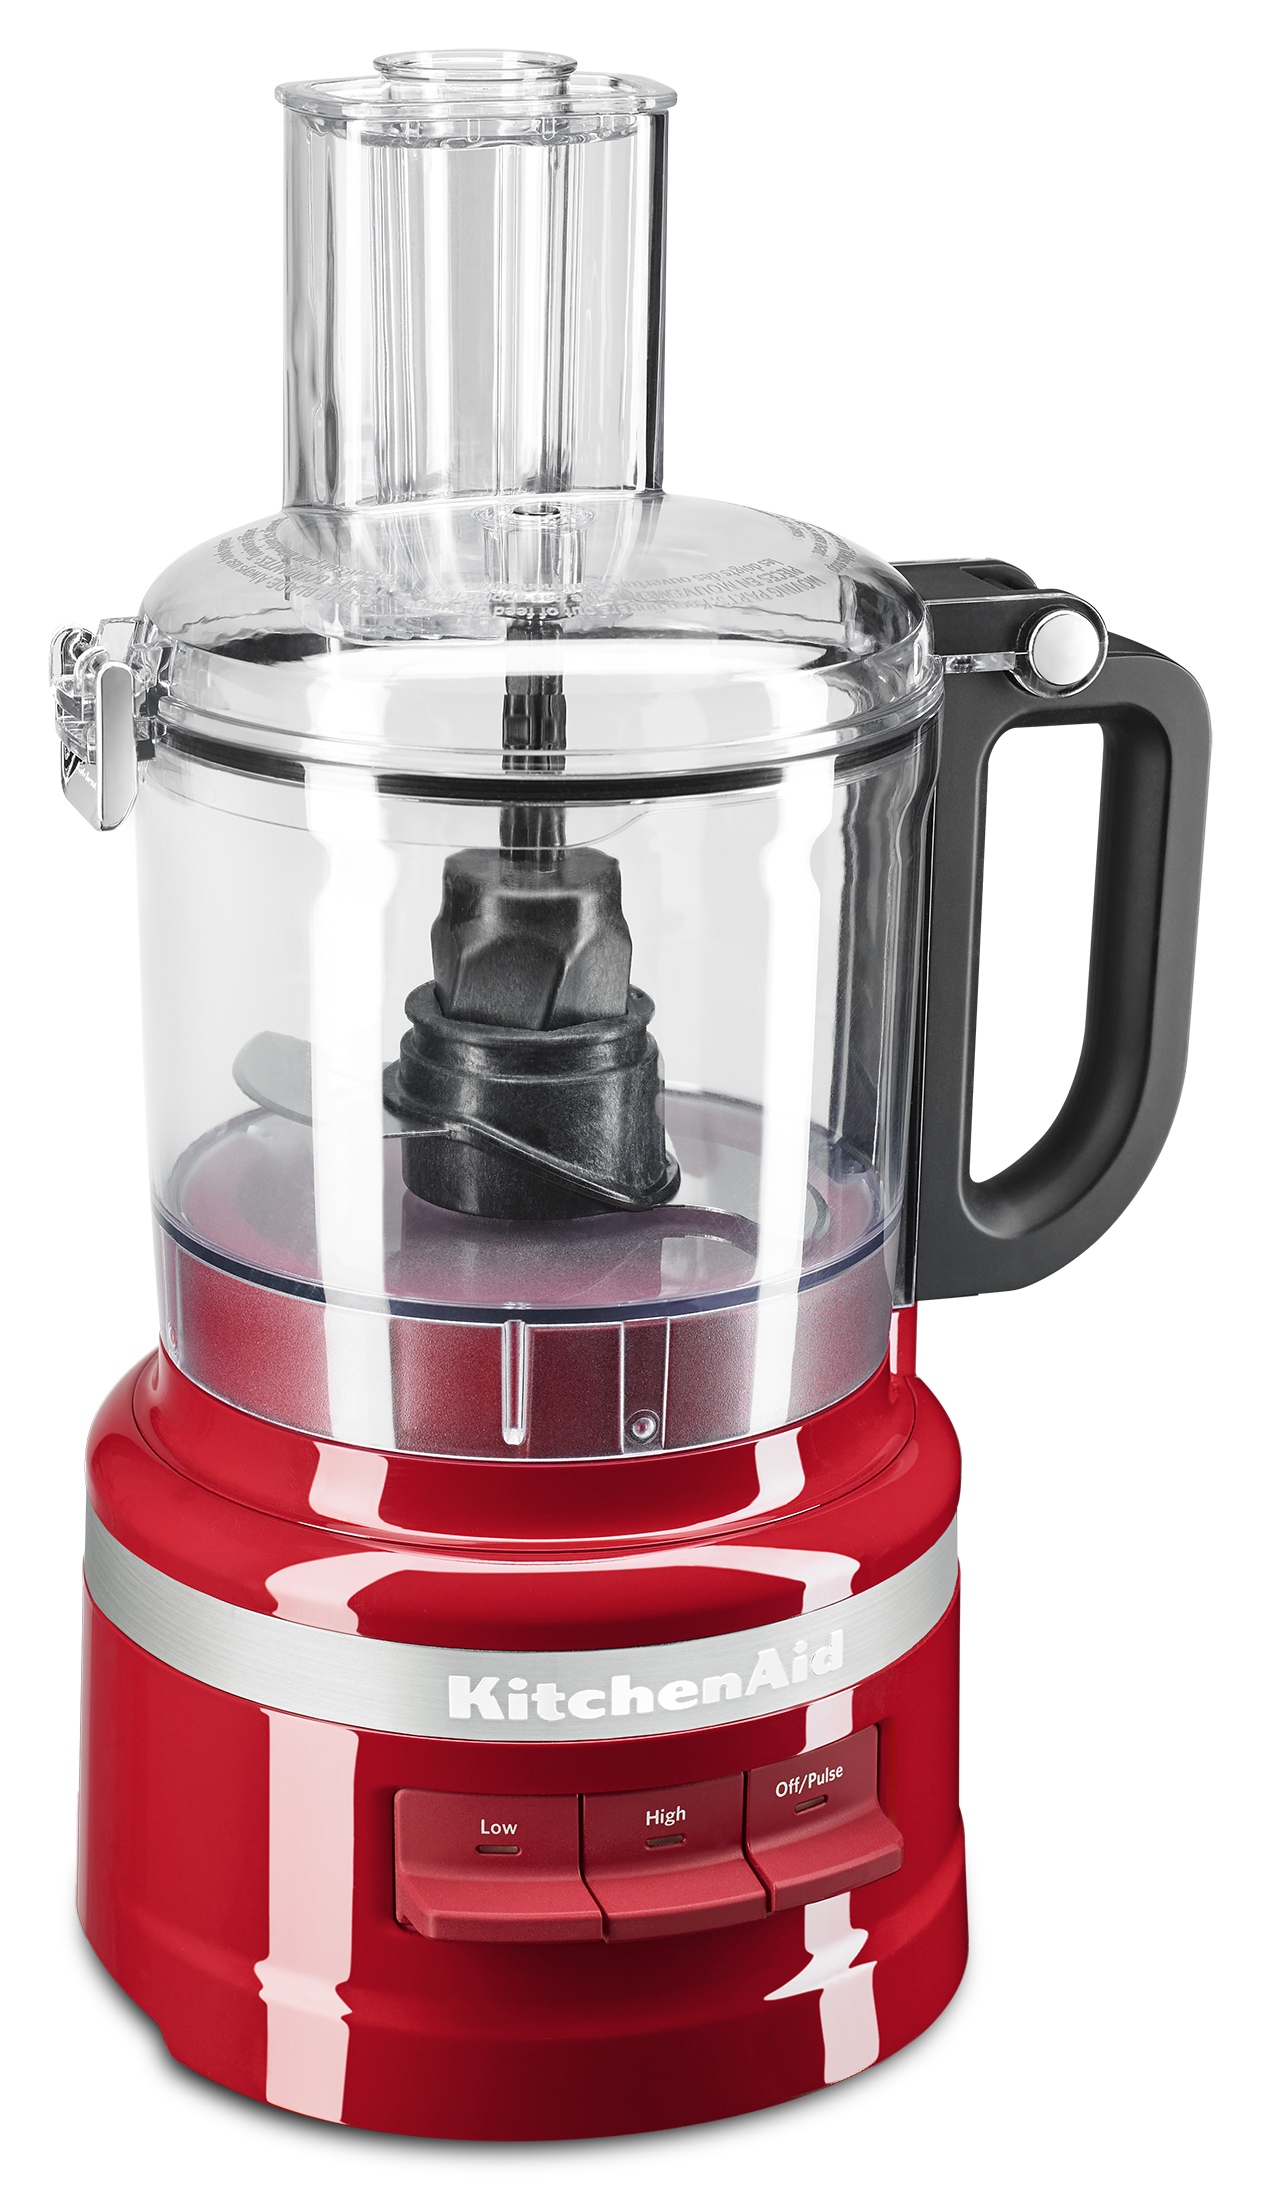 KitchenAid-7-Cup-Food-Processor-Plus-KFP0719 thumbnail 4